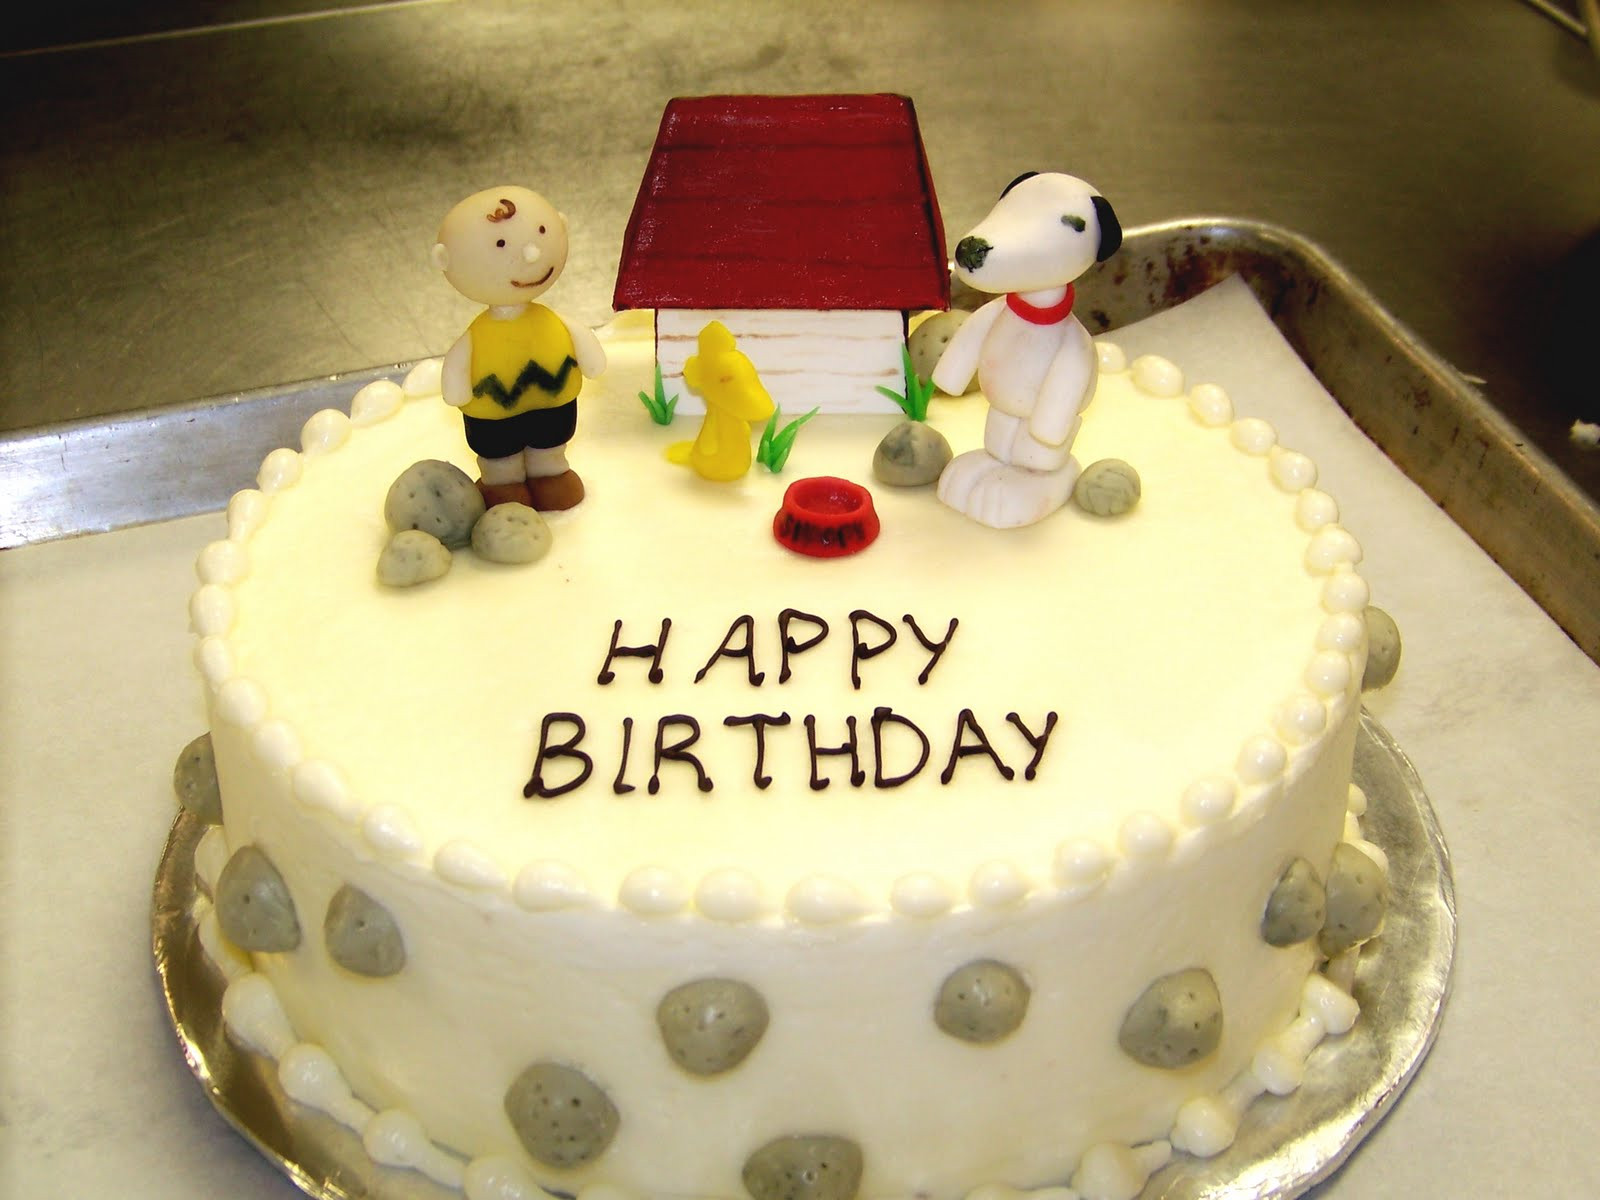 Best ideas about Cake Happy Birthday . Save or Pin Special Birthday Cake Cake Idea Red Velvet Now.